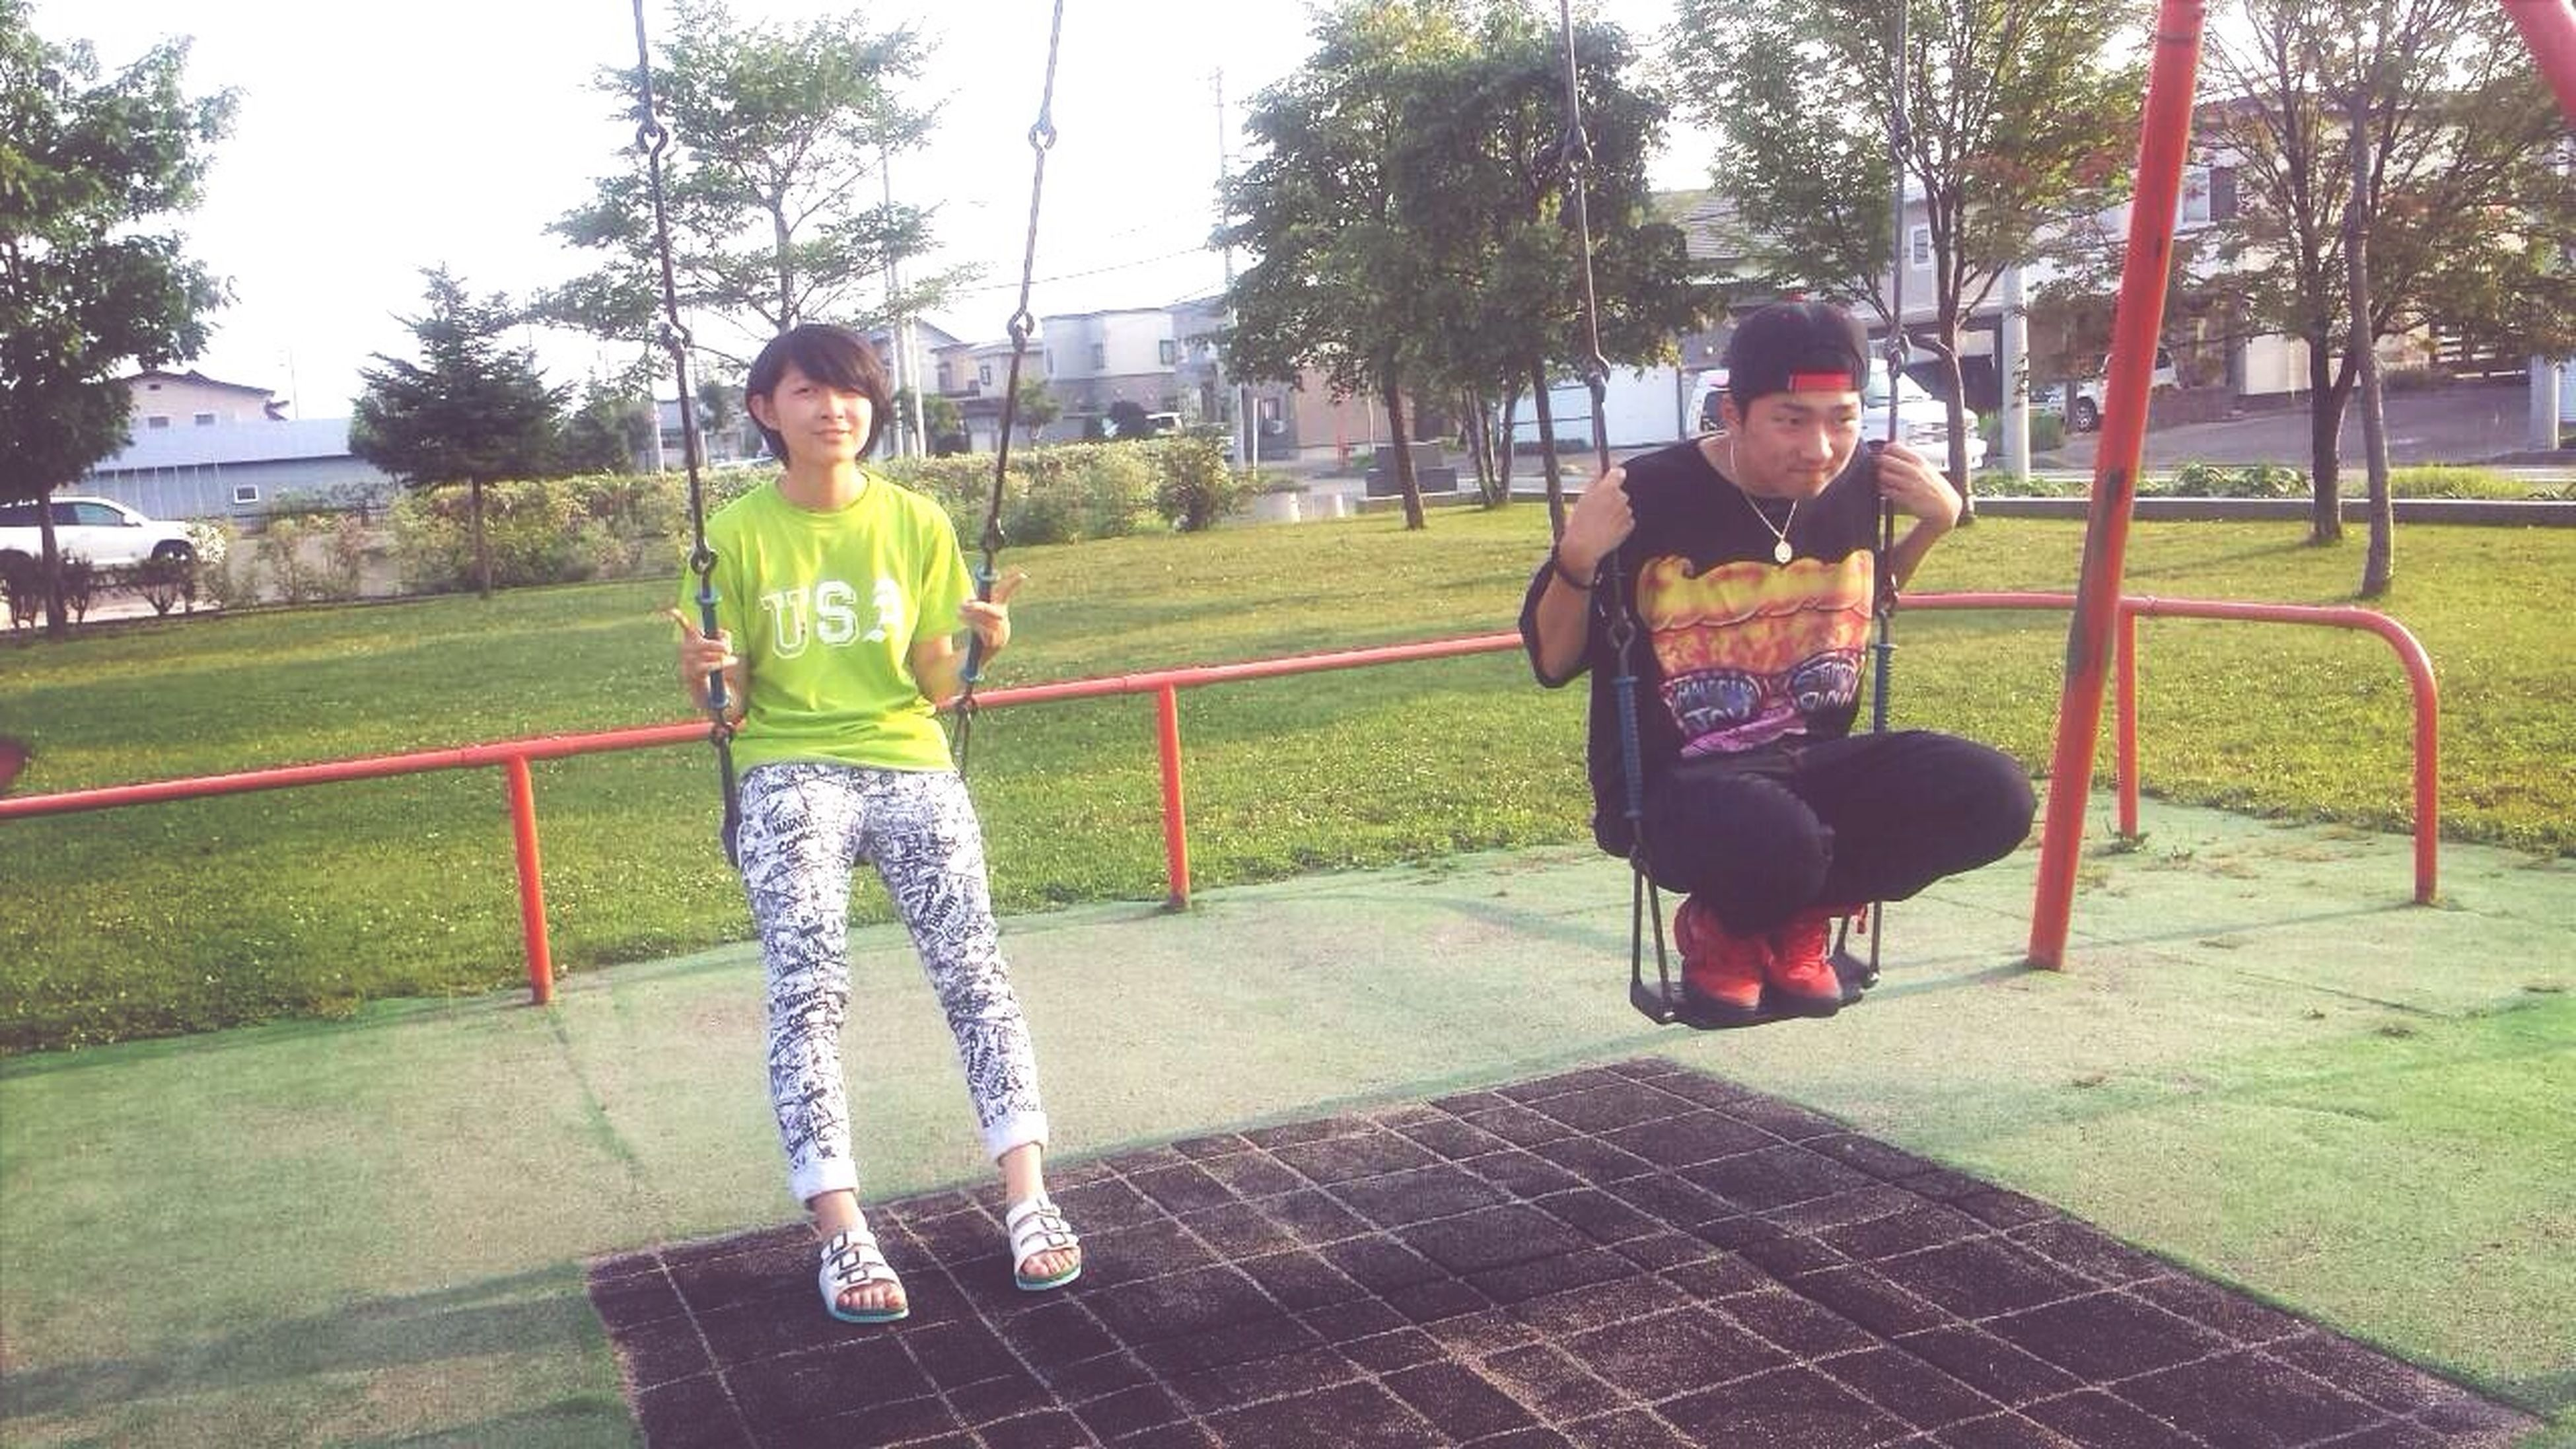 childhood, full length, elementary age, casual clothing, boys, lifestyles, girls, person, leisure activity, innocence, cute, park - man made space, playing, grass, tree, playful, playground, togetherness